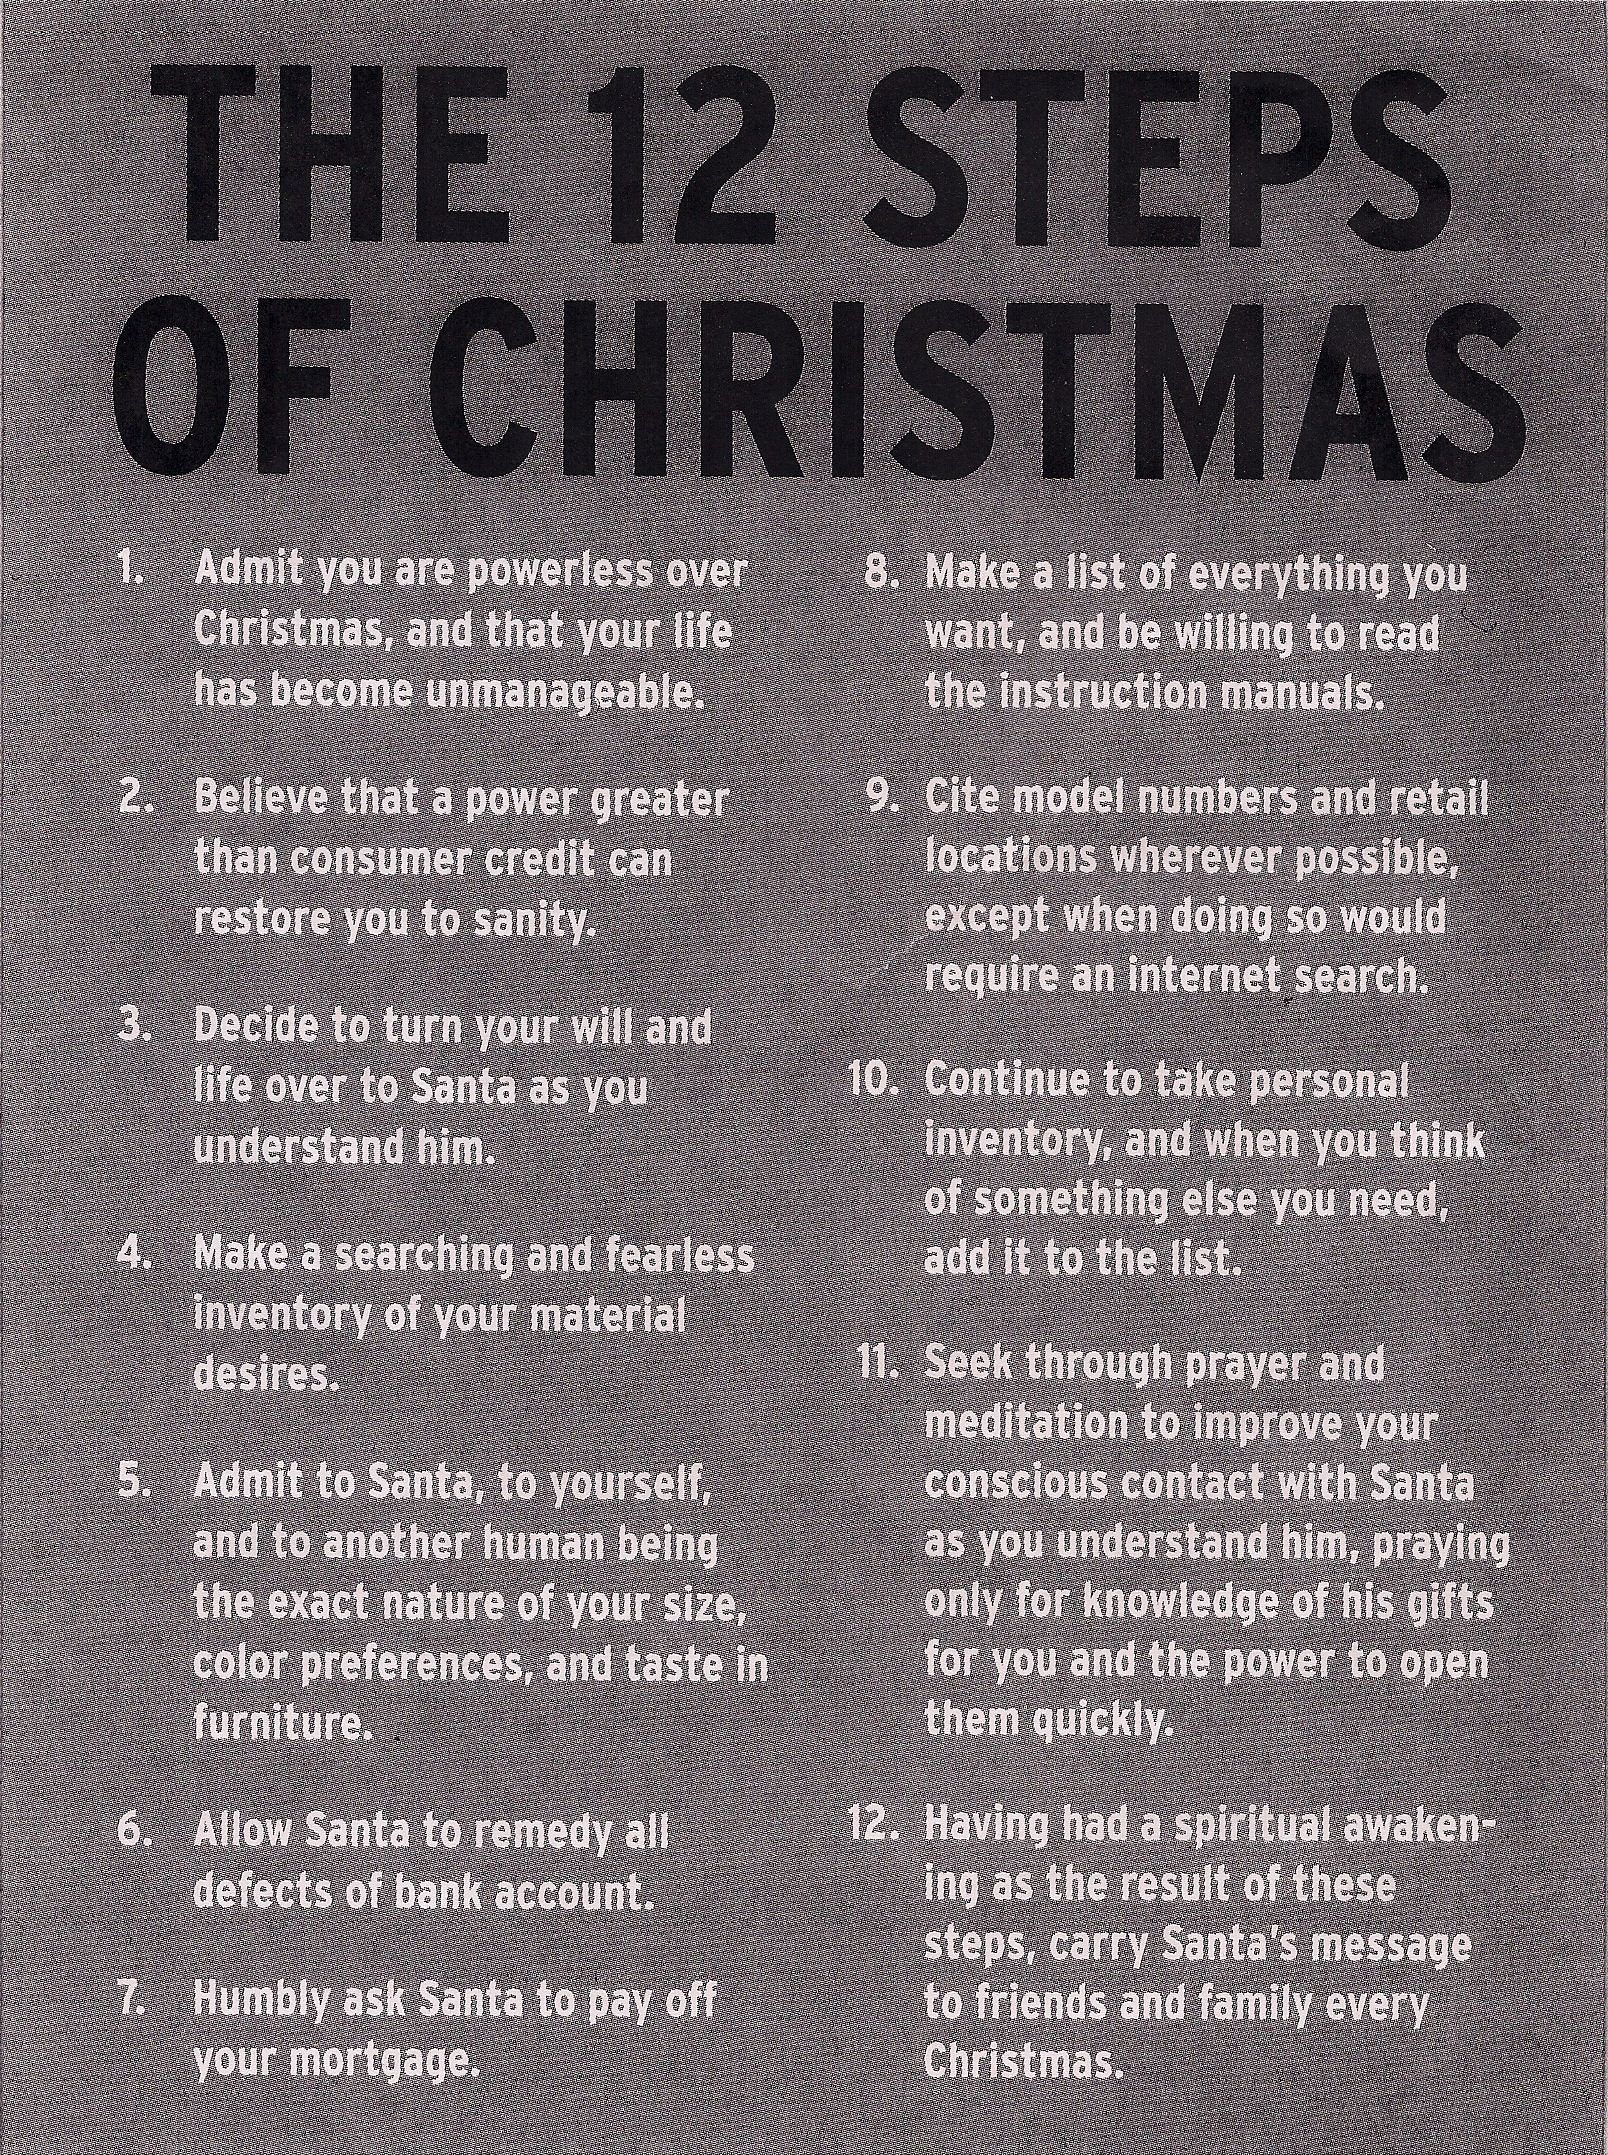 The 12 Steps of Christmas.....Not a song, but a Christmas